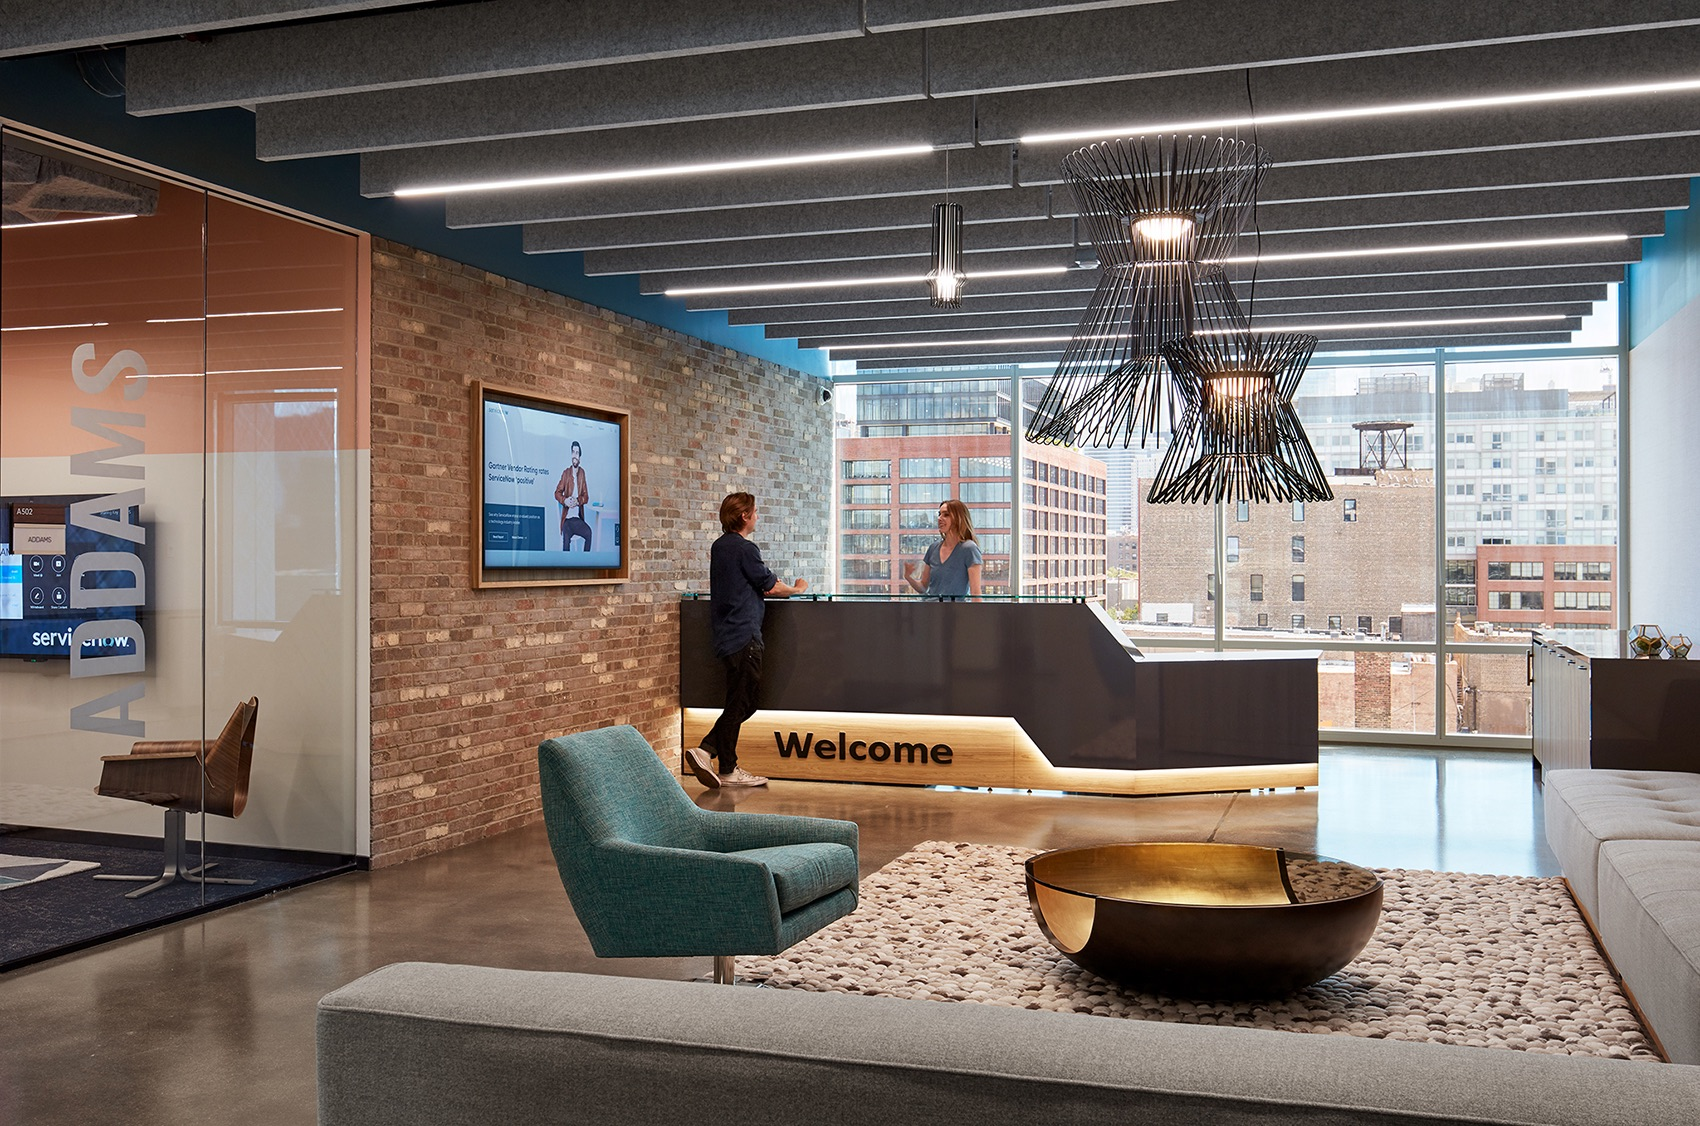 A Look Inside ServiceNow's Sleek New Chicago Office